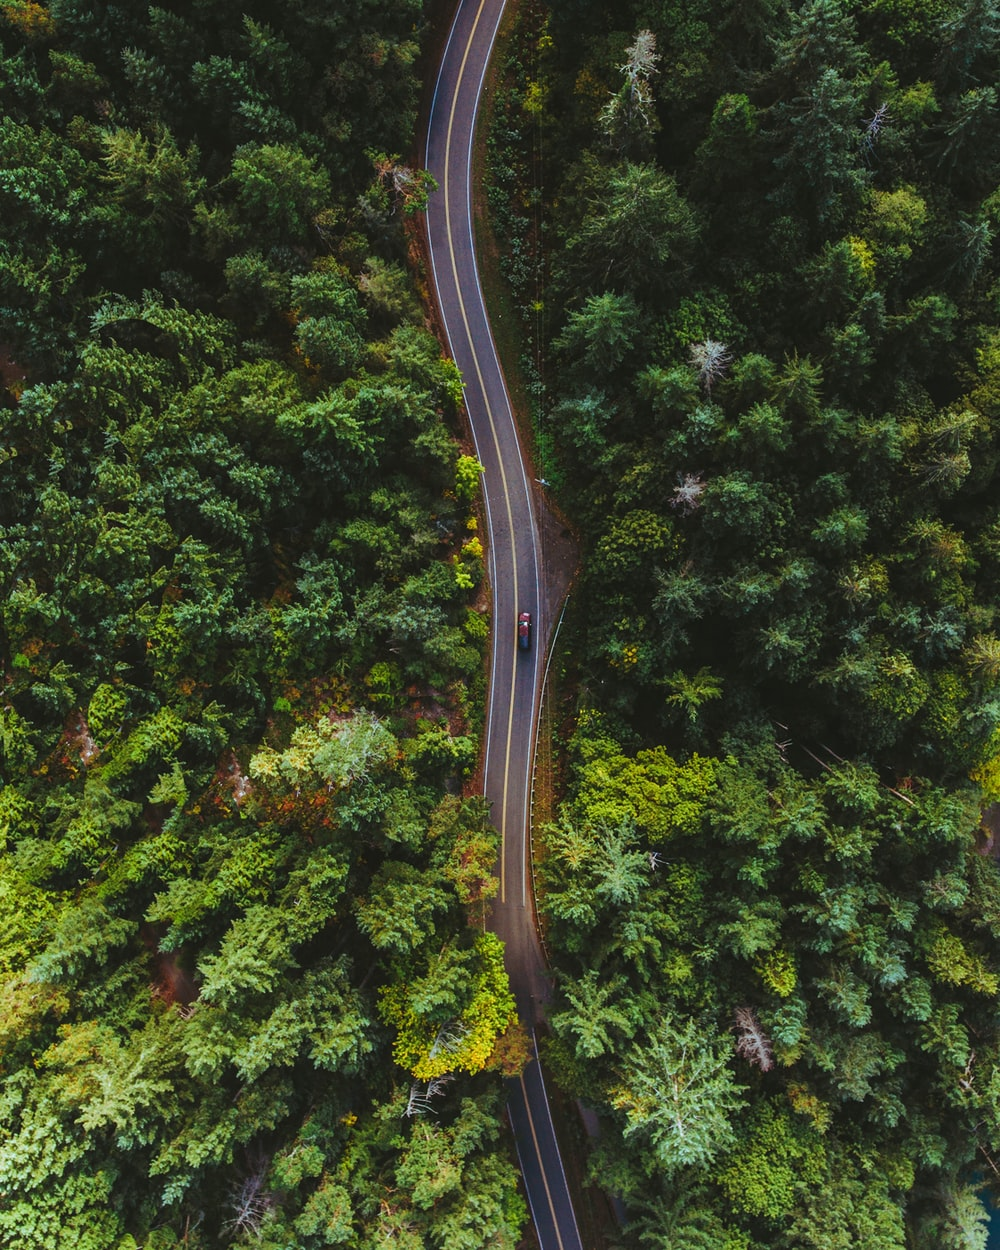 bird's eye view of car on road